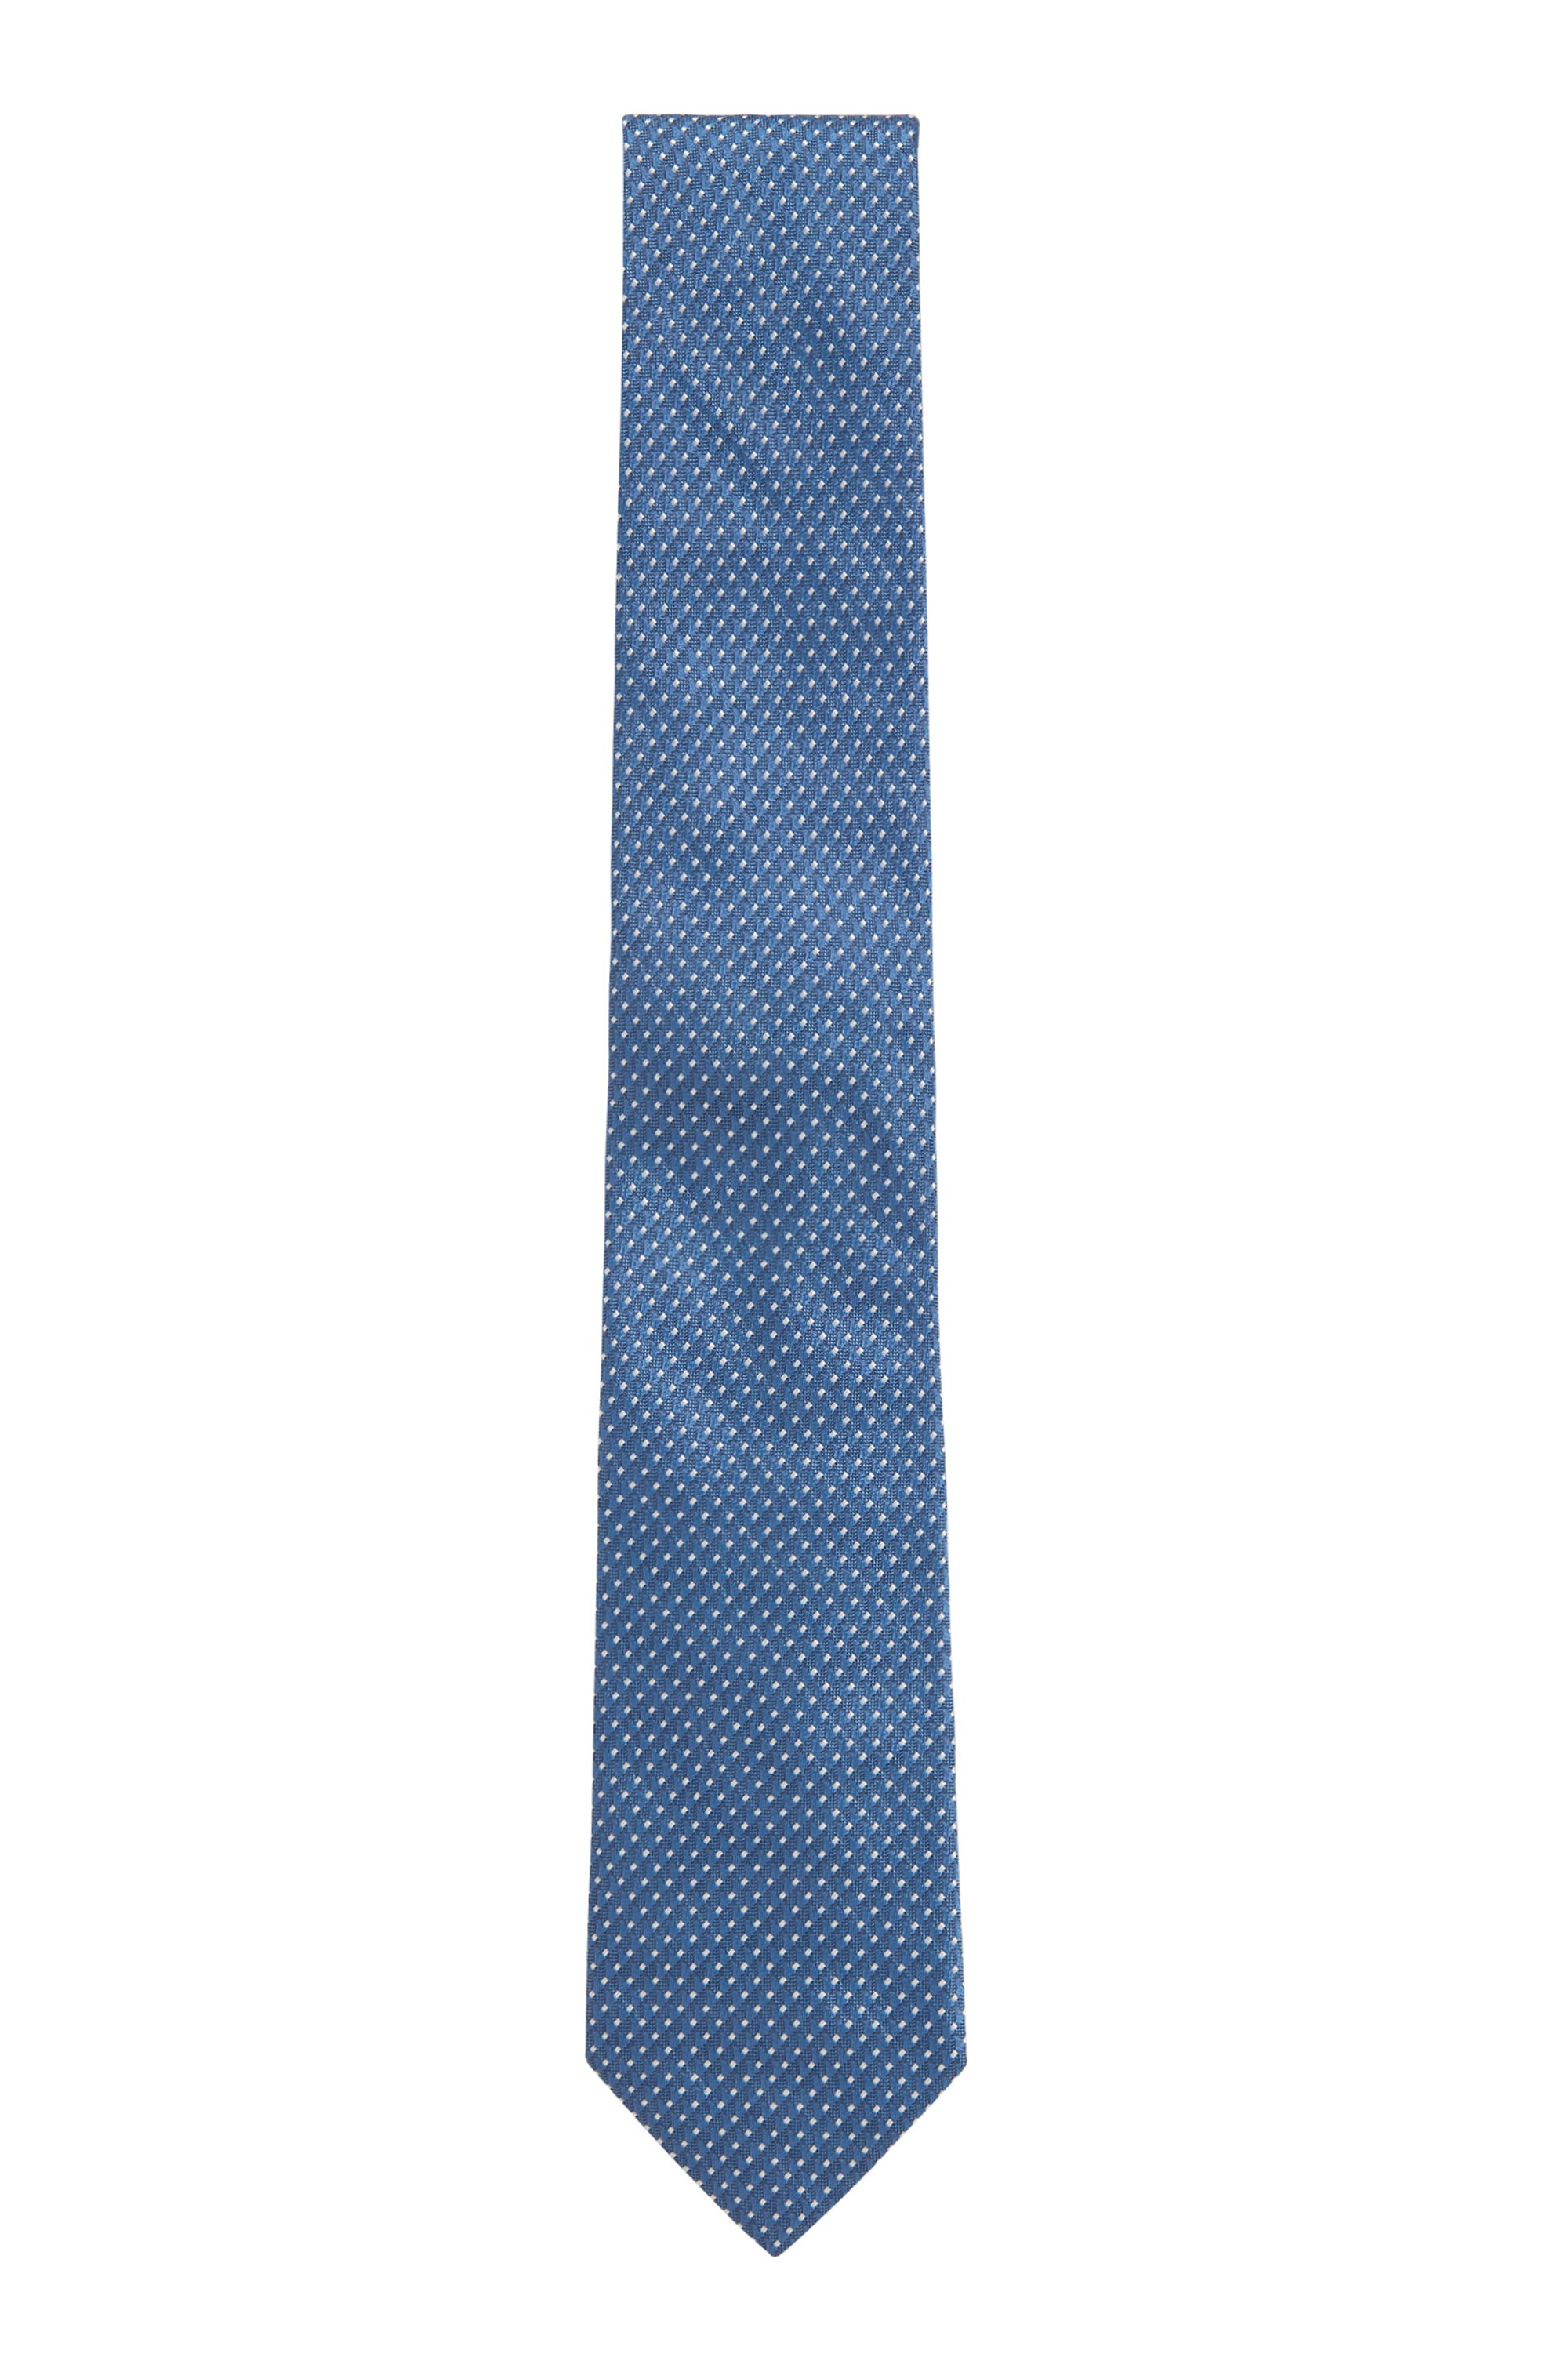 Tie in silk jacquard with micro pattern, Blue Patterned